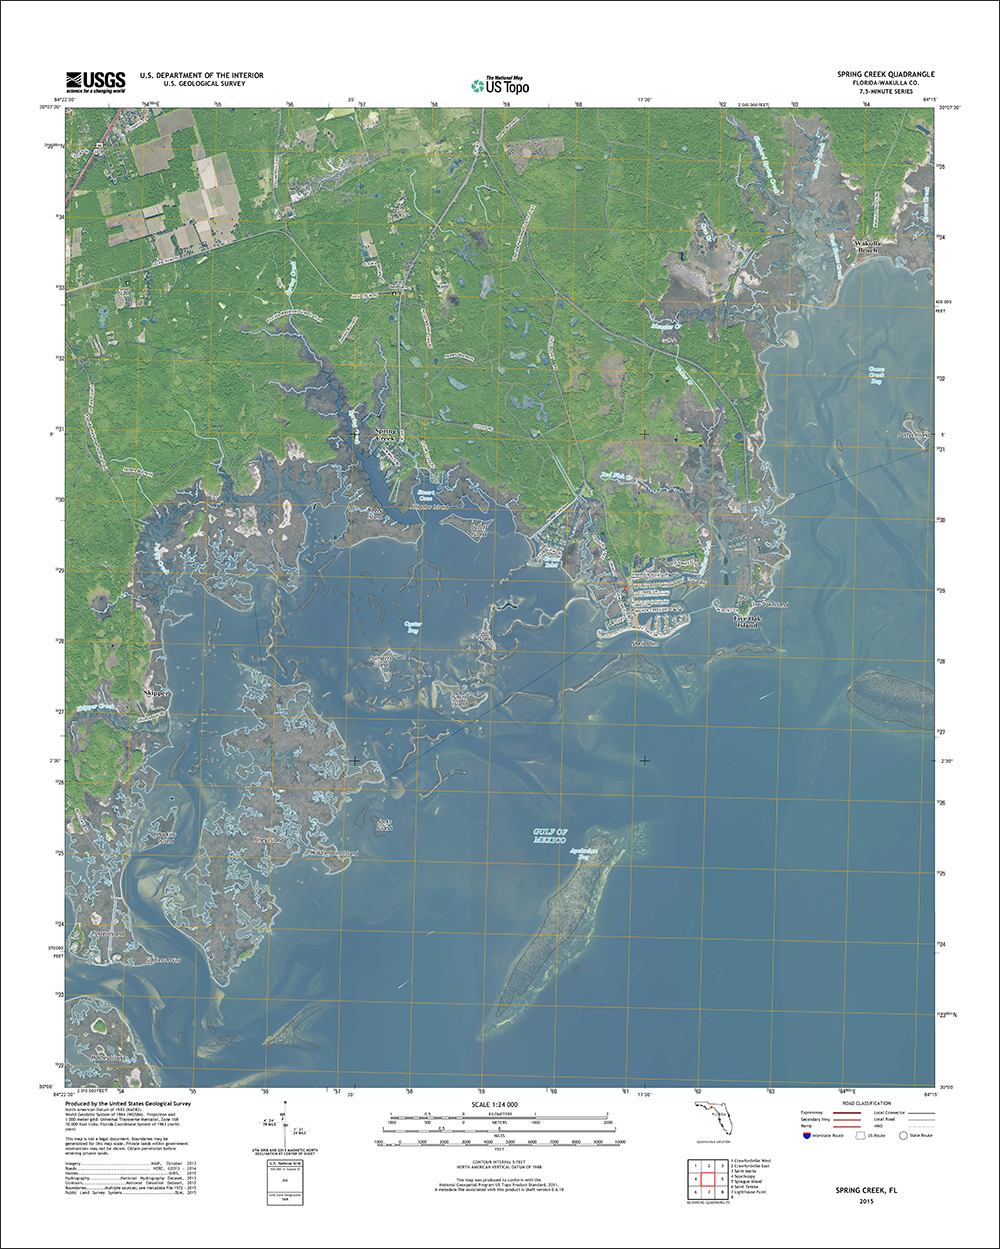 New Sunshine State Maps Add U.S. Forest Service Data | Geology Page